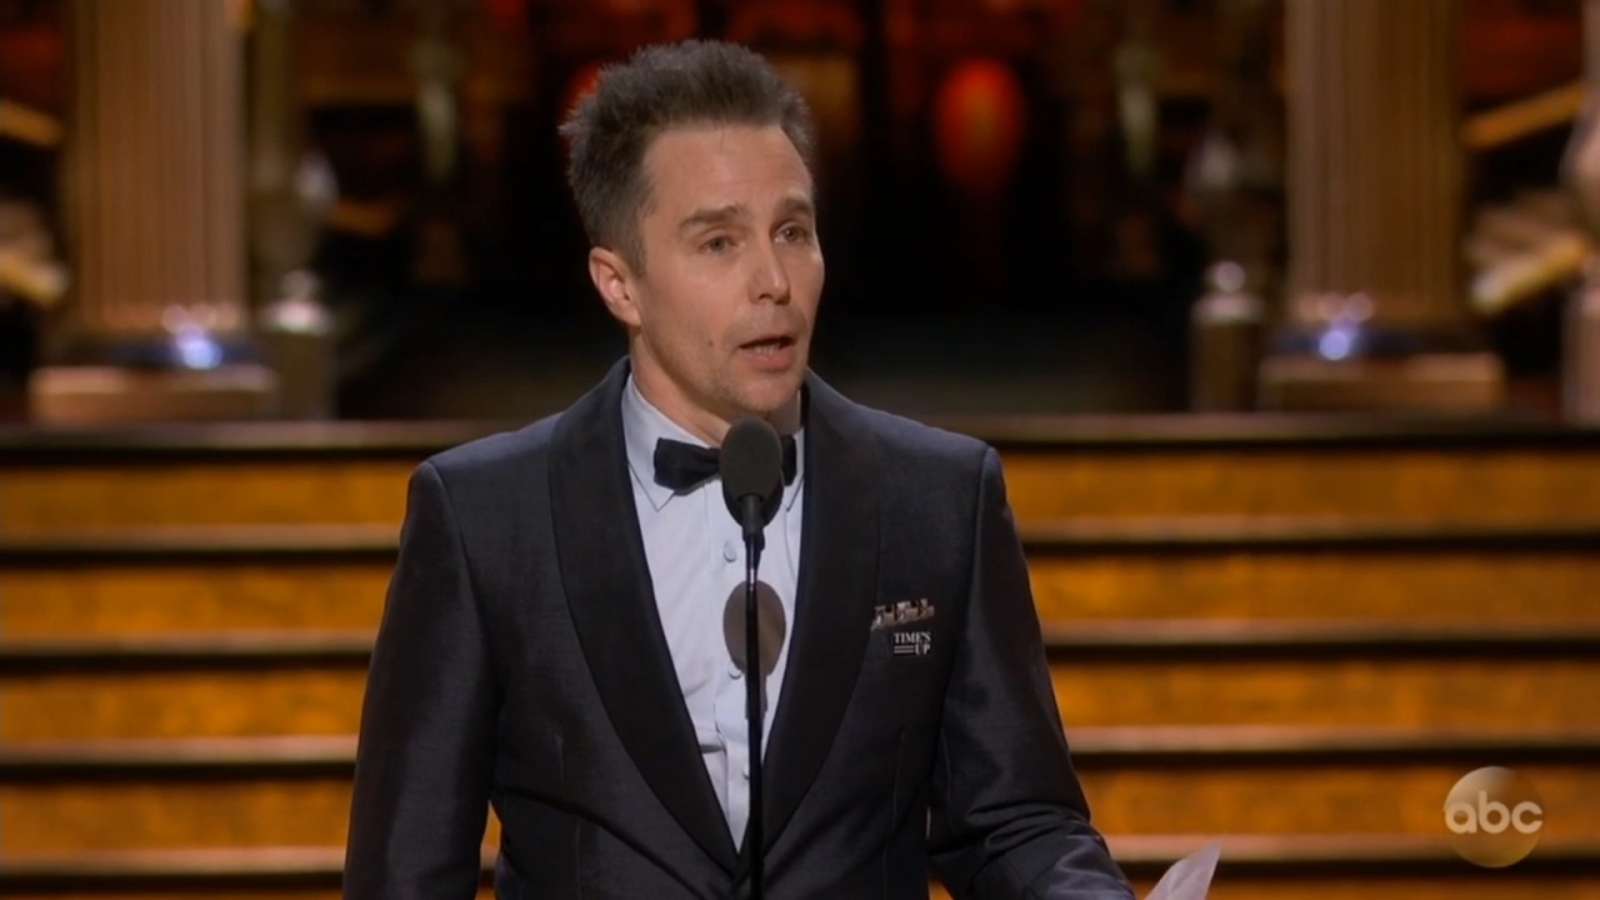 In Oscars acceptance speech Sam Rockwell thanks his parents for love of movies